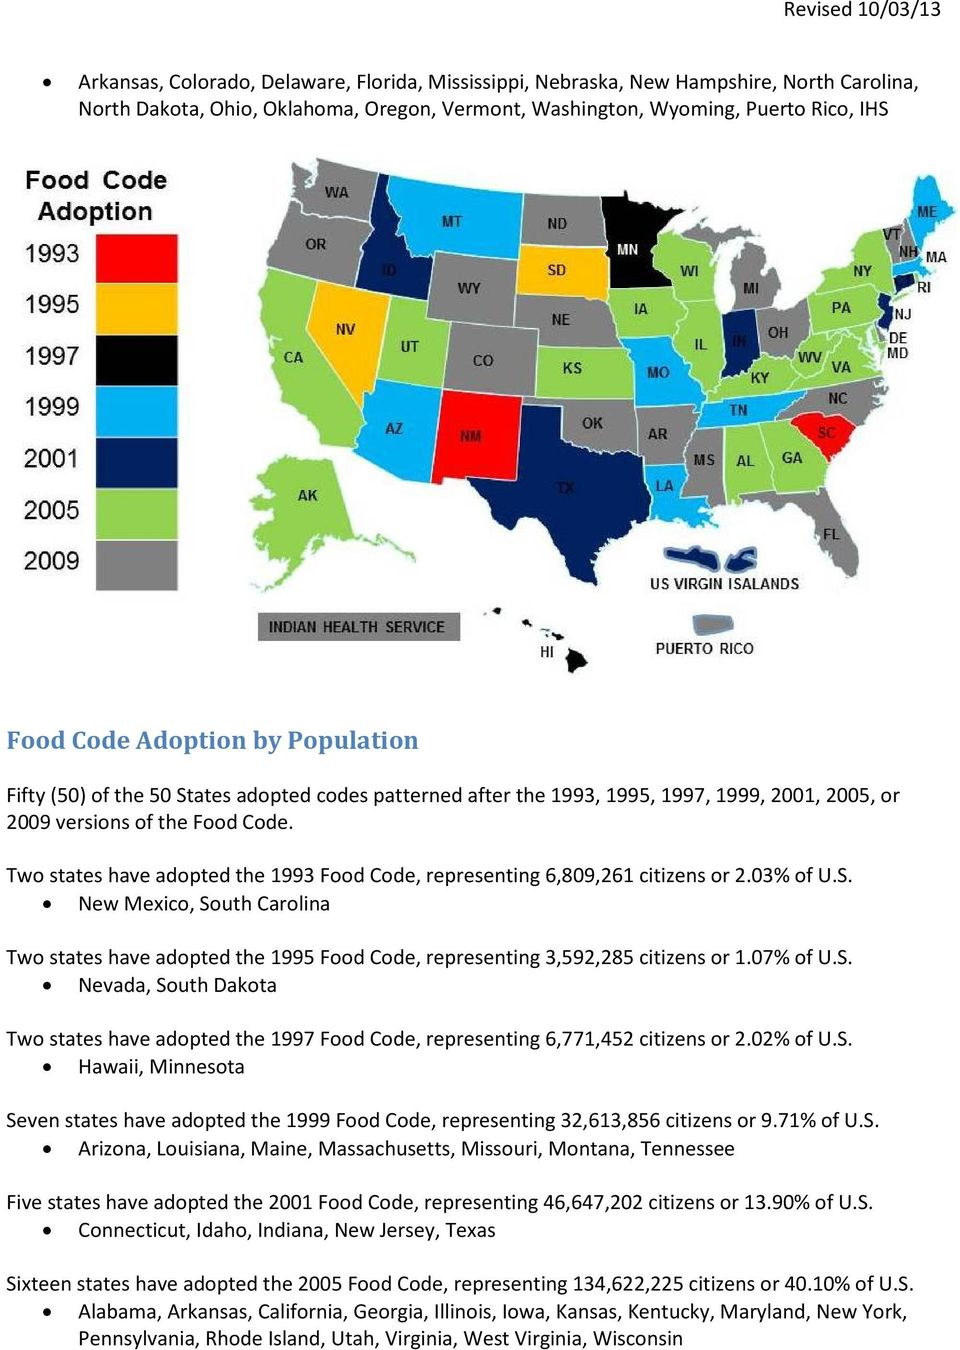 Two states have adopted the 1993 Food Code, representing 6,809,261 citizens or 2.03% of U.S.